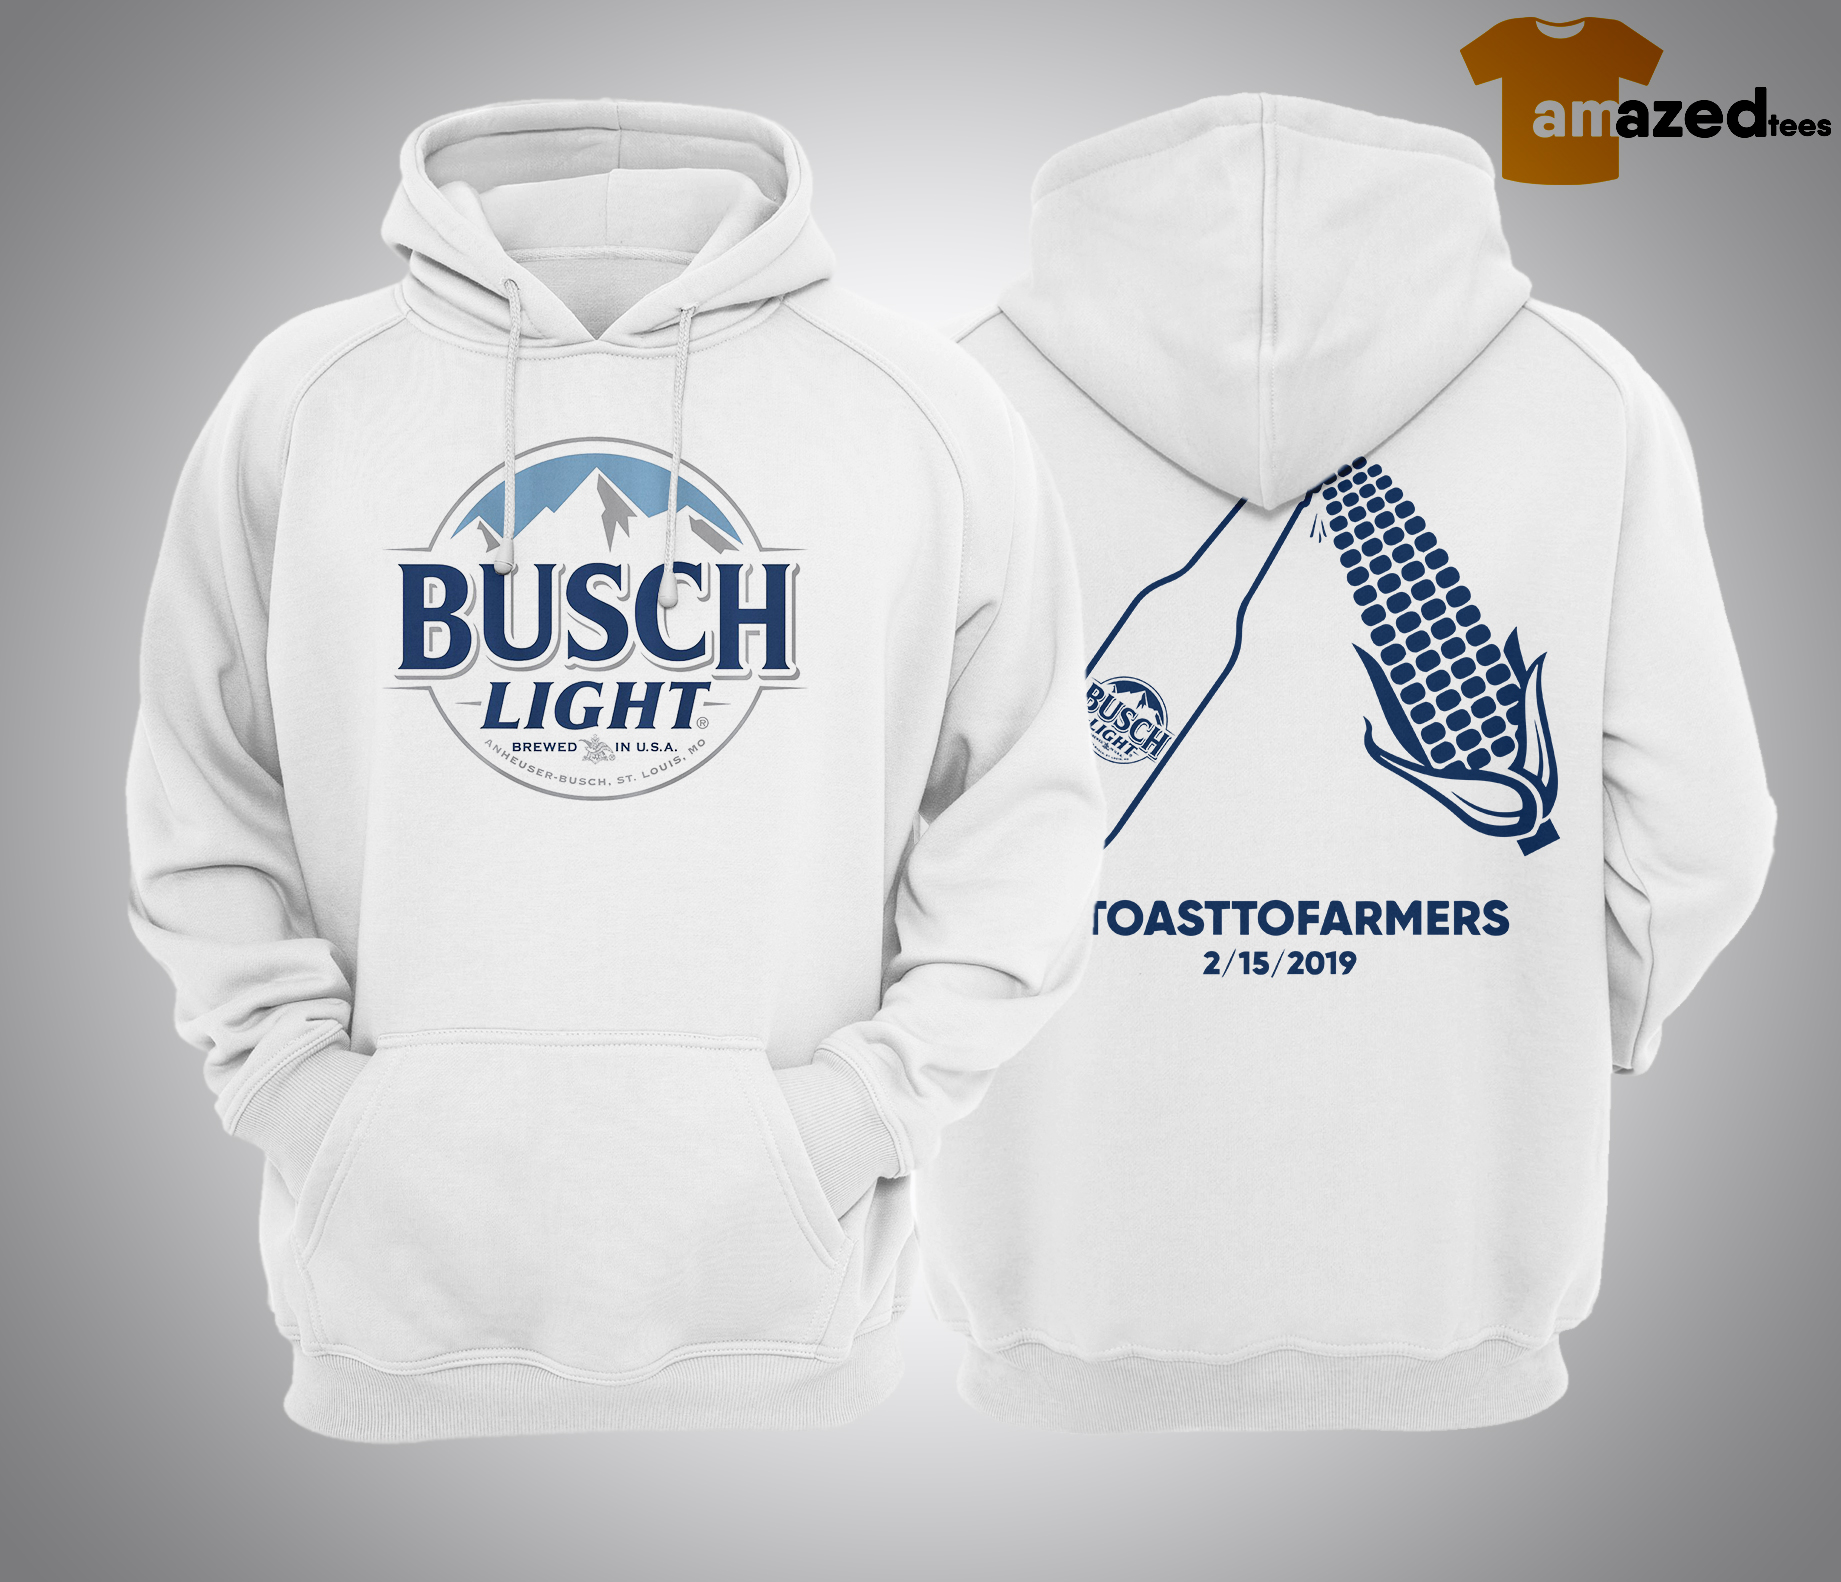 Busch Light Brewed In USA #toasttofarmers 2/15/2019 Hoodie